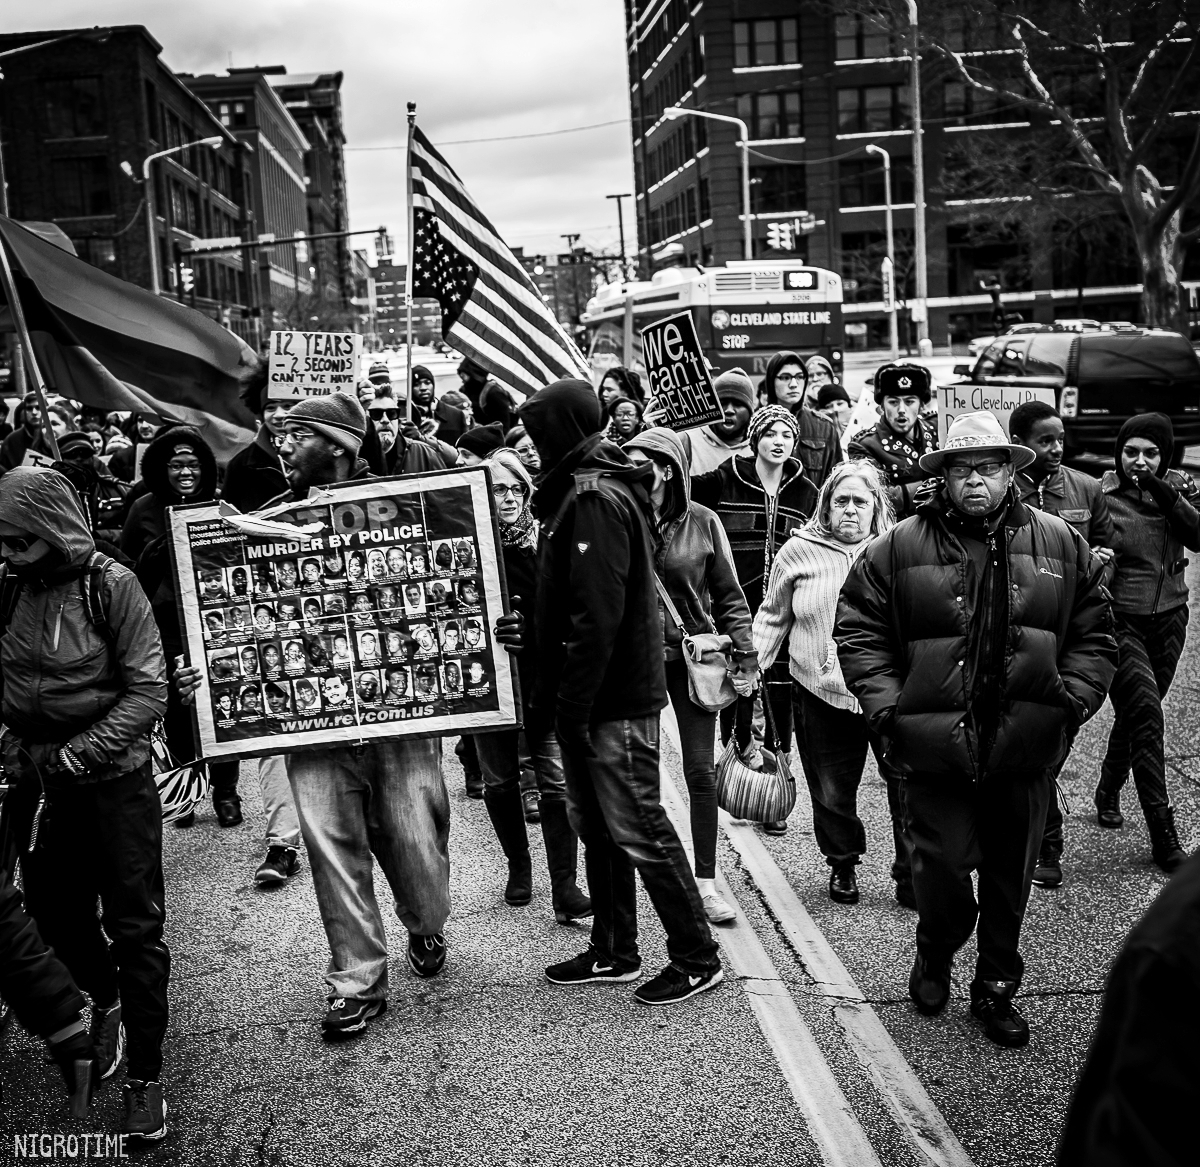 Charles See (far right) Director of Community Engagement observing the protest on December 29, 2015